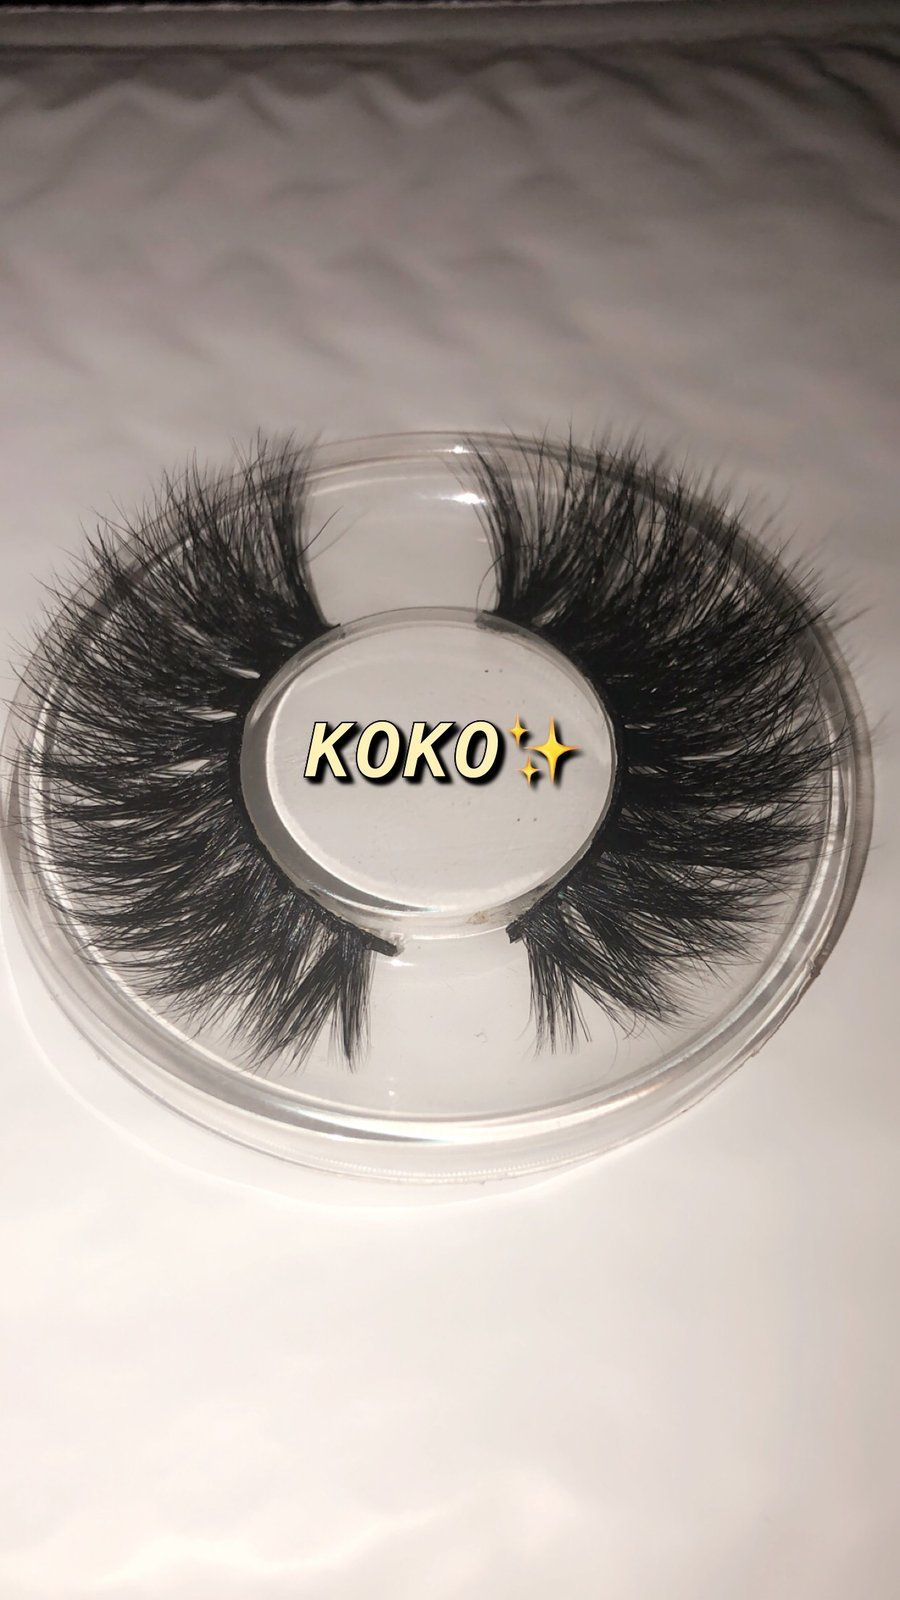 22f556b21b6 KOKO Mink Eyelashes, Gold Glass, Glass Containers, Ardell Lashes, Eyelash  Extensions,